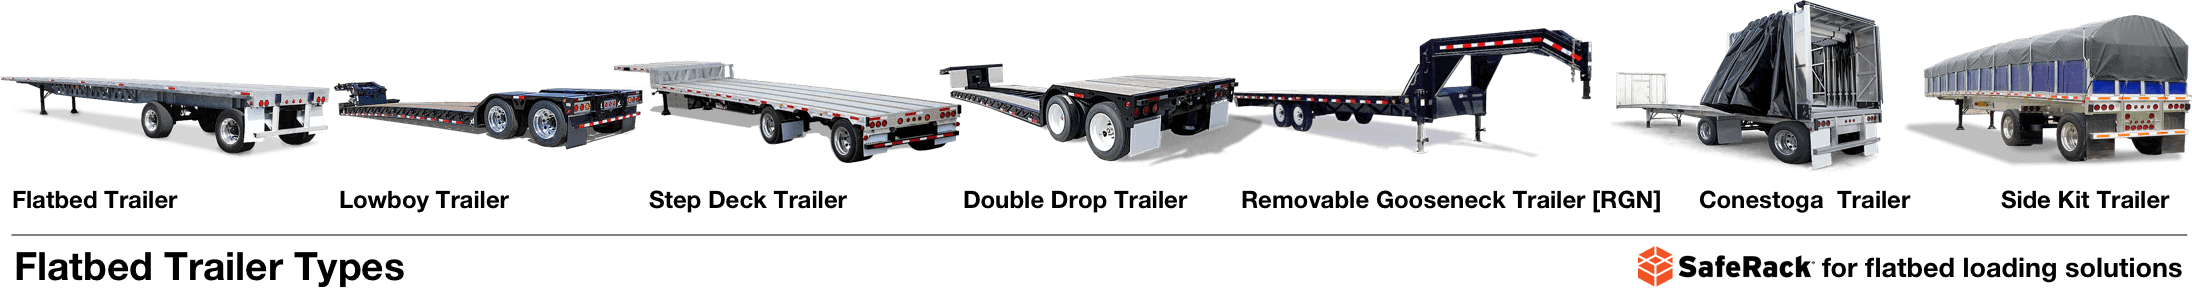 Flatbed Trailer Types